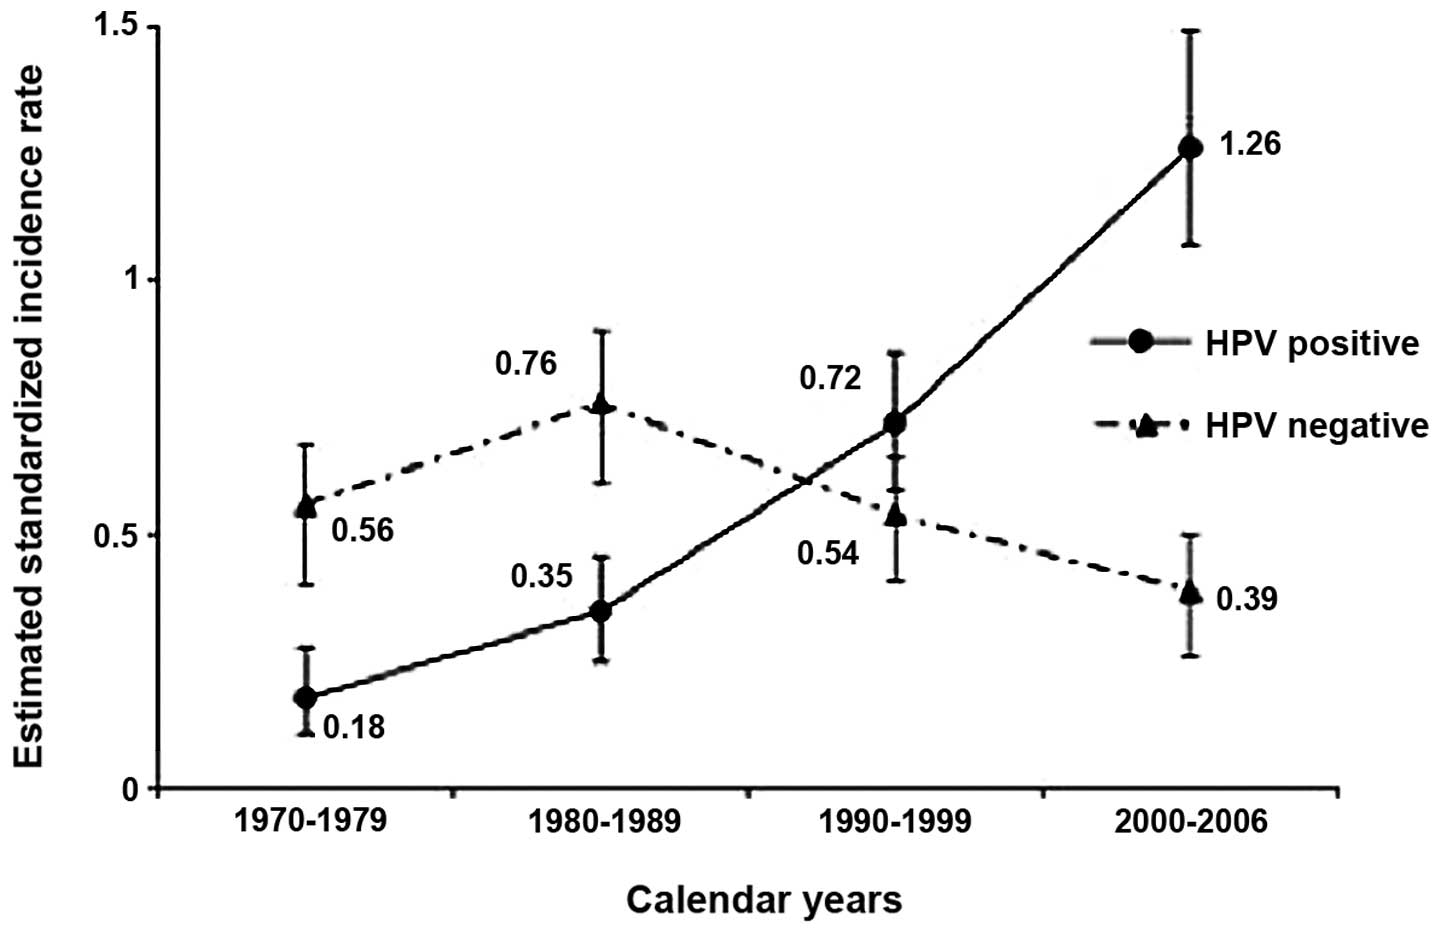 hpv oropharyngeal cancer age